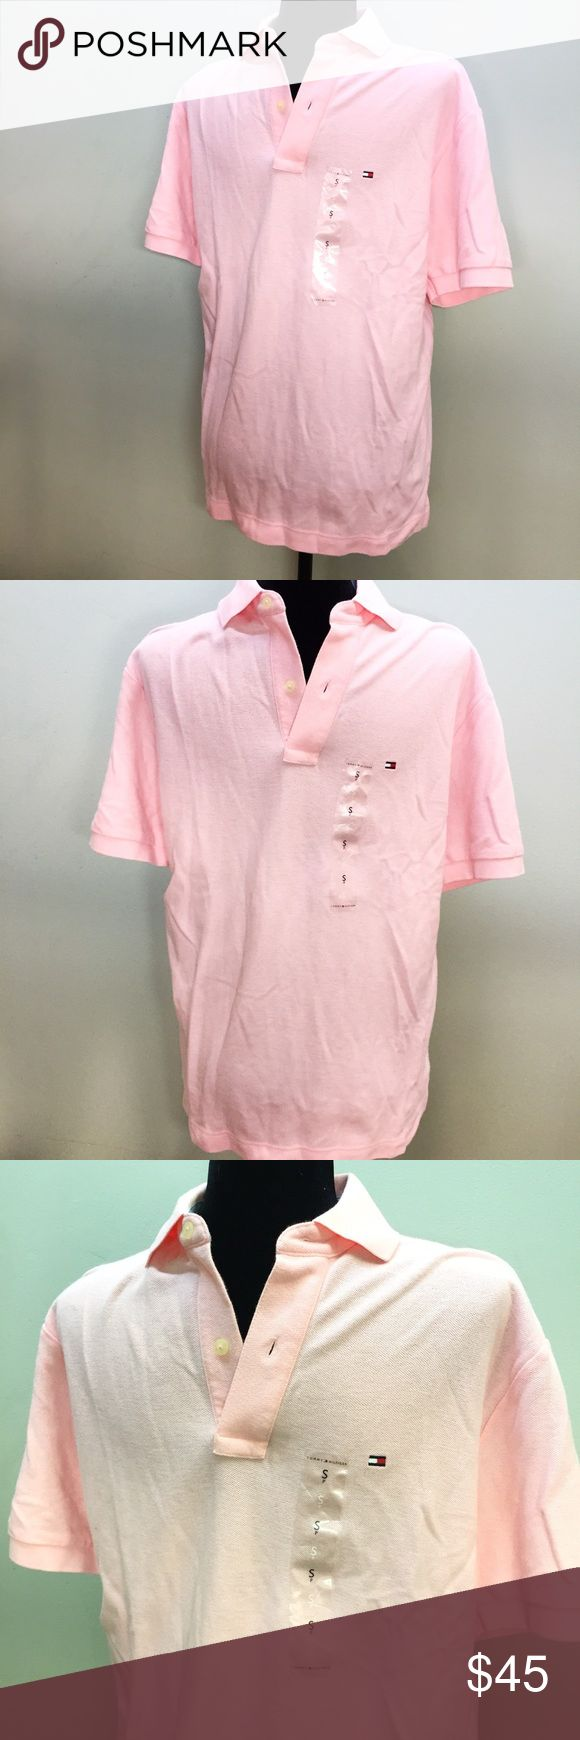 NEw men's small light pink polo shirt Brand new, never worn and still with tags. Men's size Small light pink polo dress shirt by Tommy Hilfiger. Tommy Hilfiger Shirts Polos